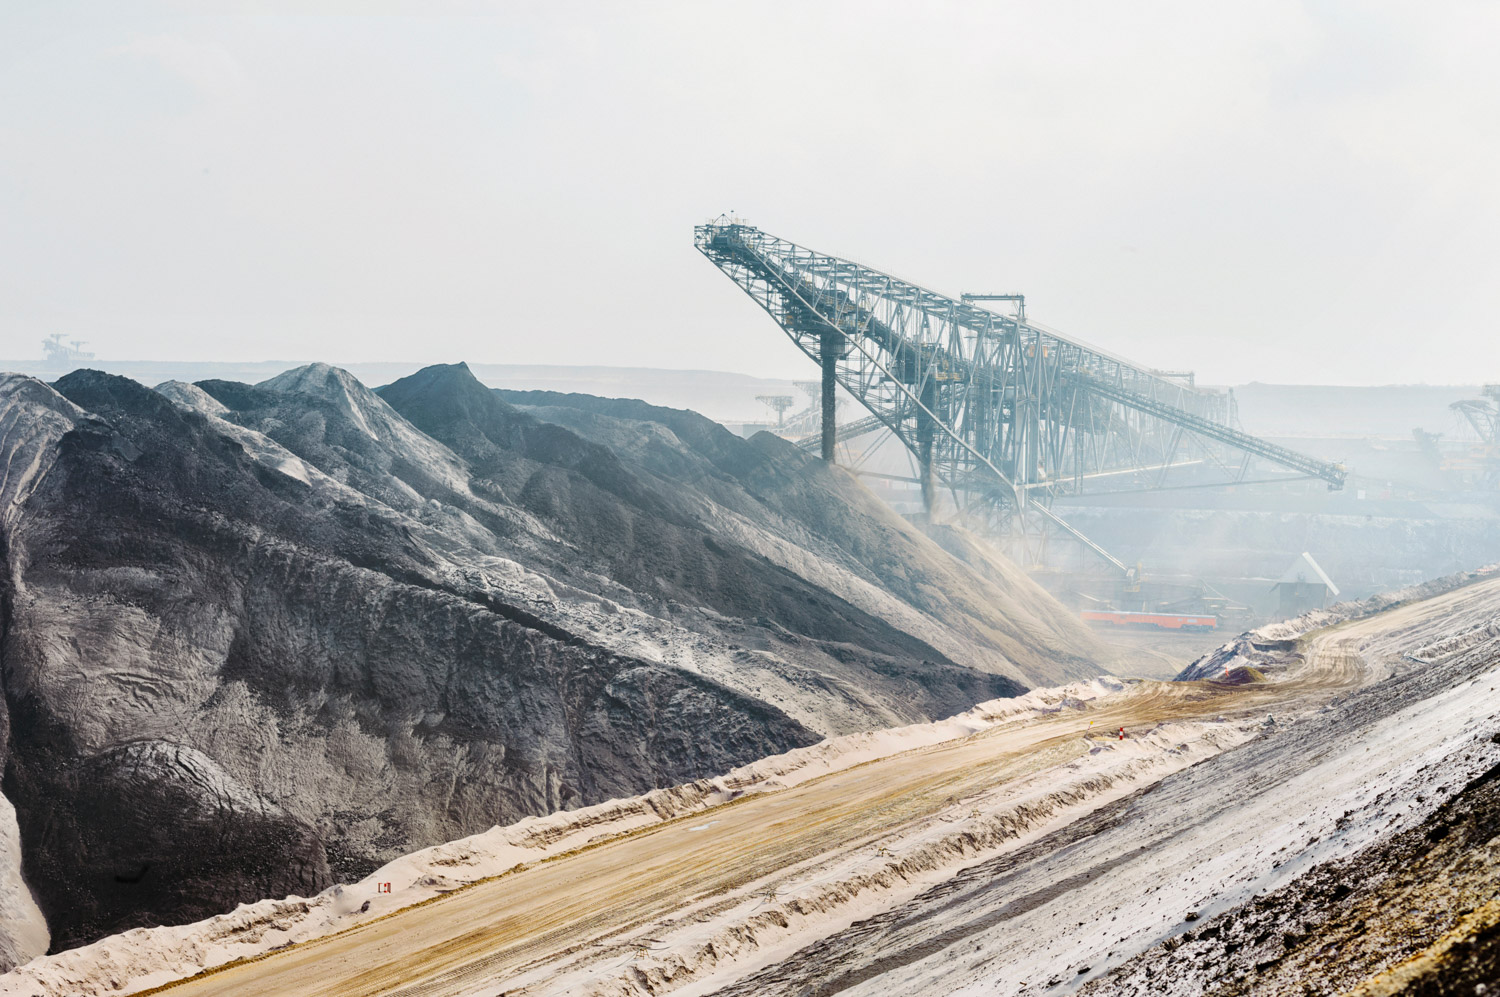 """Renewables are booming, but Germany's use of lignite, the dirtiest coal, hasn't declined. At Vattenfall's Welzow-Süd mine, some of the world's largest machines claw 22 million tons a year from a 45-foot-thick seam. How long will that go on? """"Very long, I hope,"""" said Jan Domann, a young engineer. """"We have enough lignite."""""""